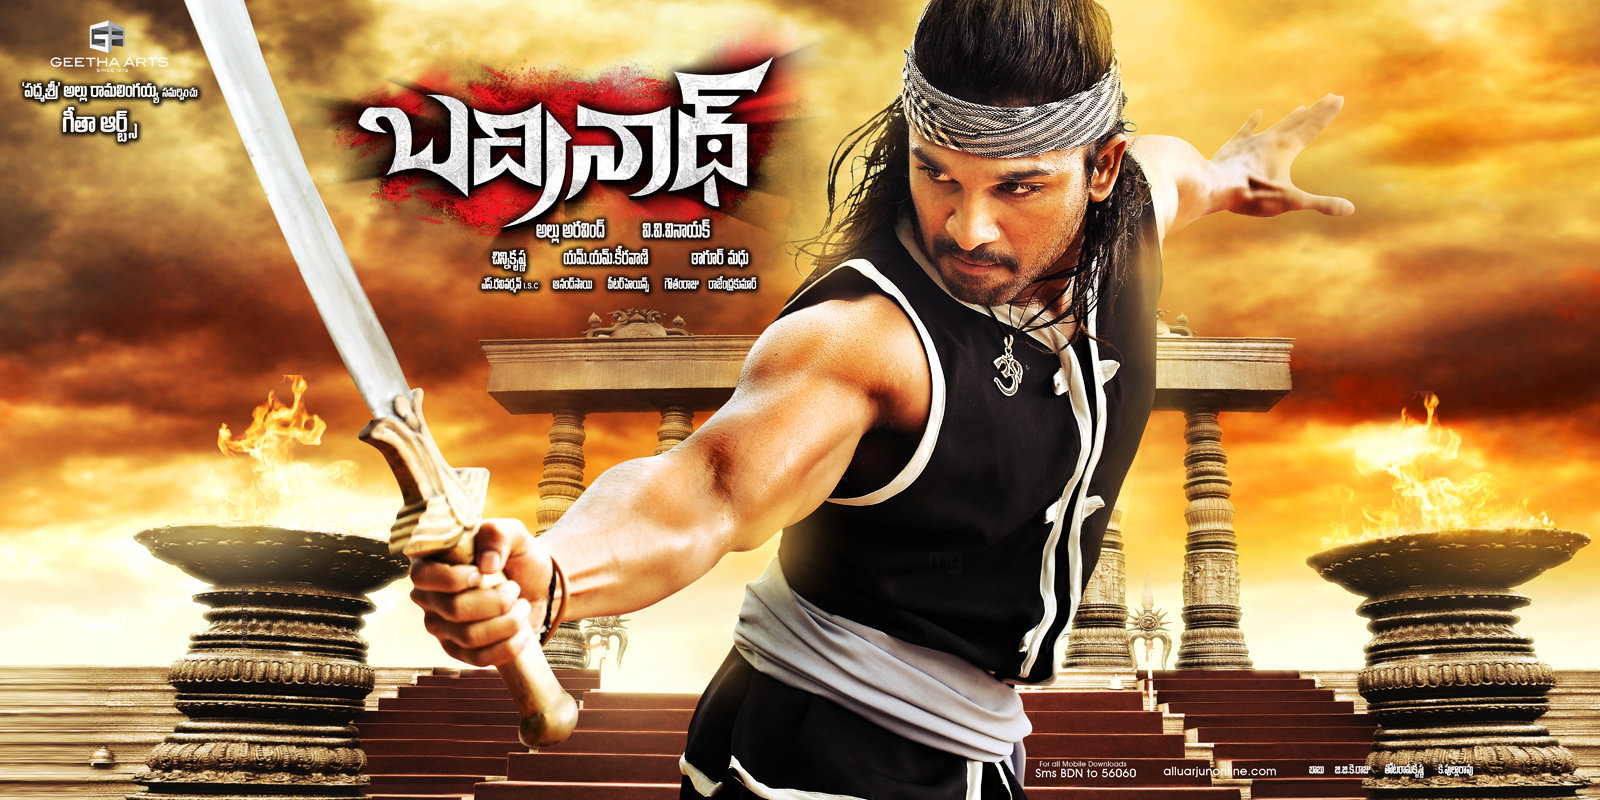 Photo And Wallpapers Free Download Badrinath Movie -9431